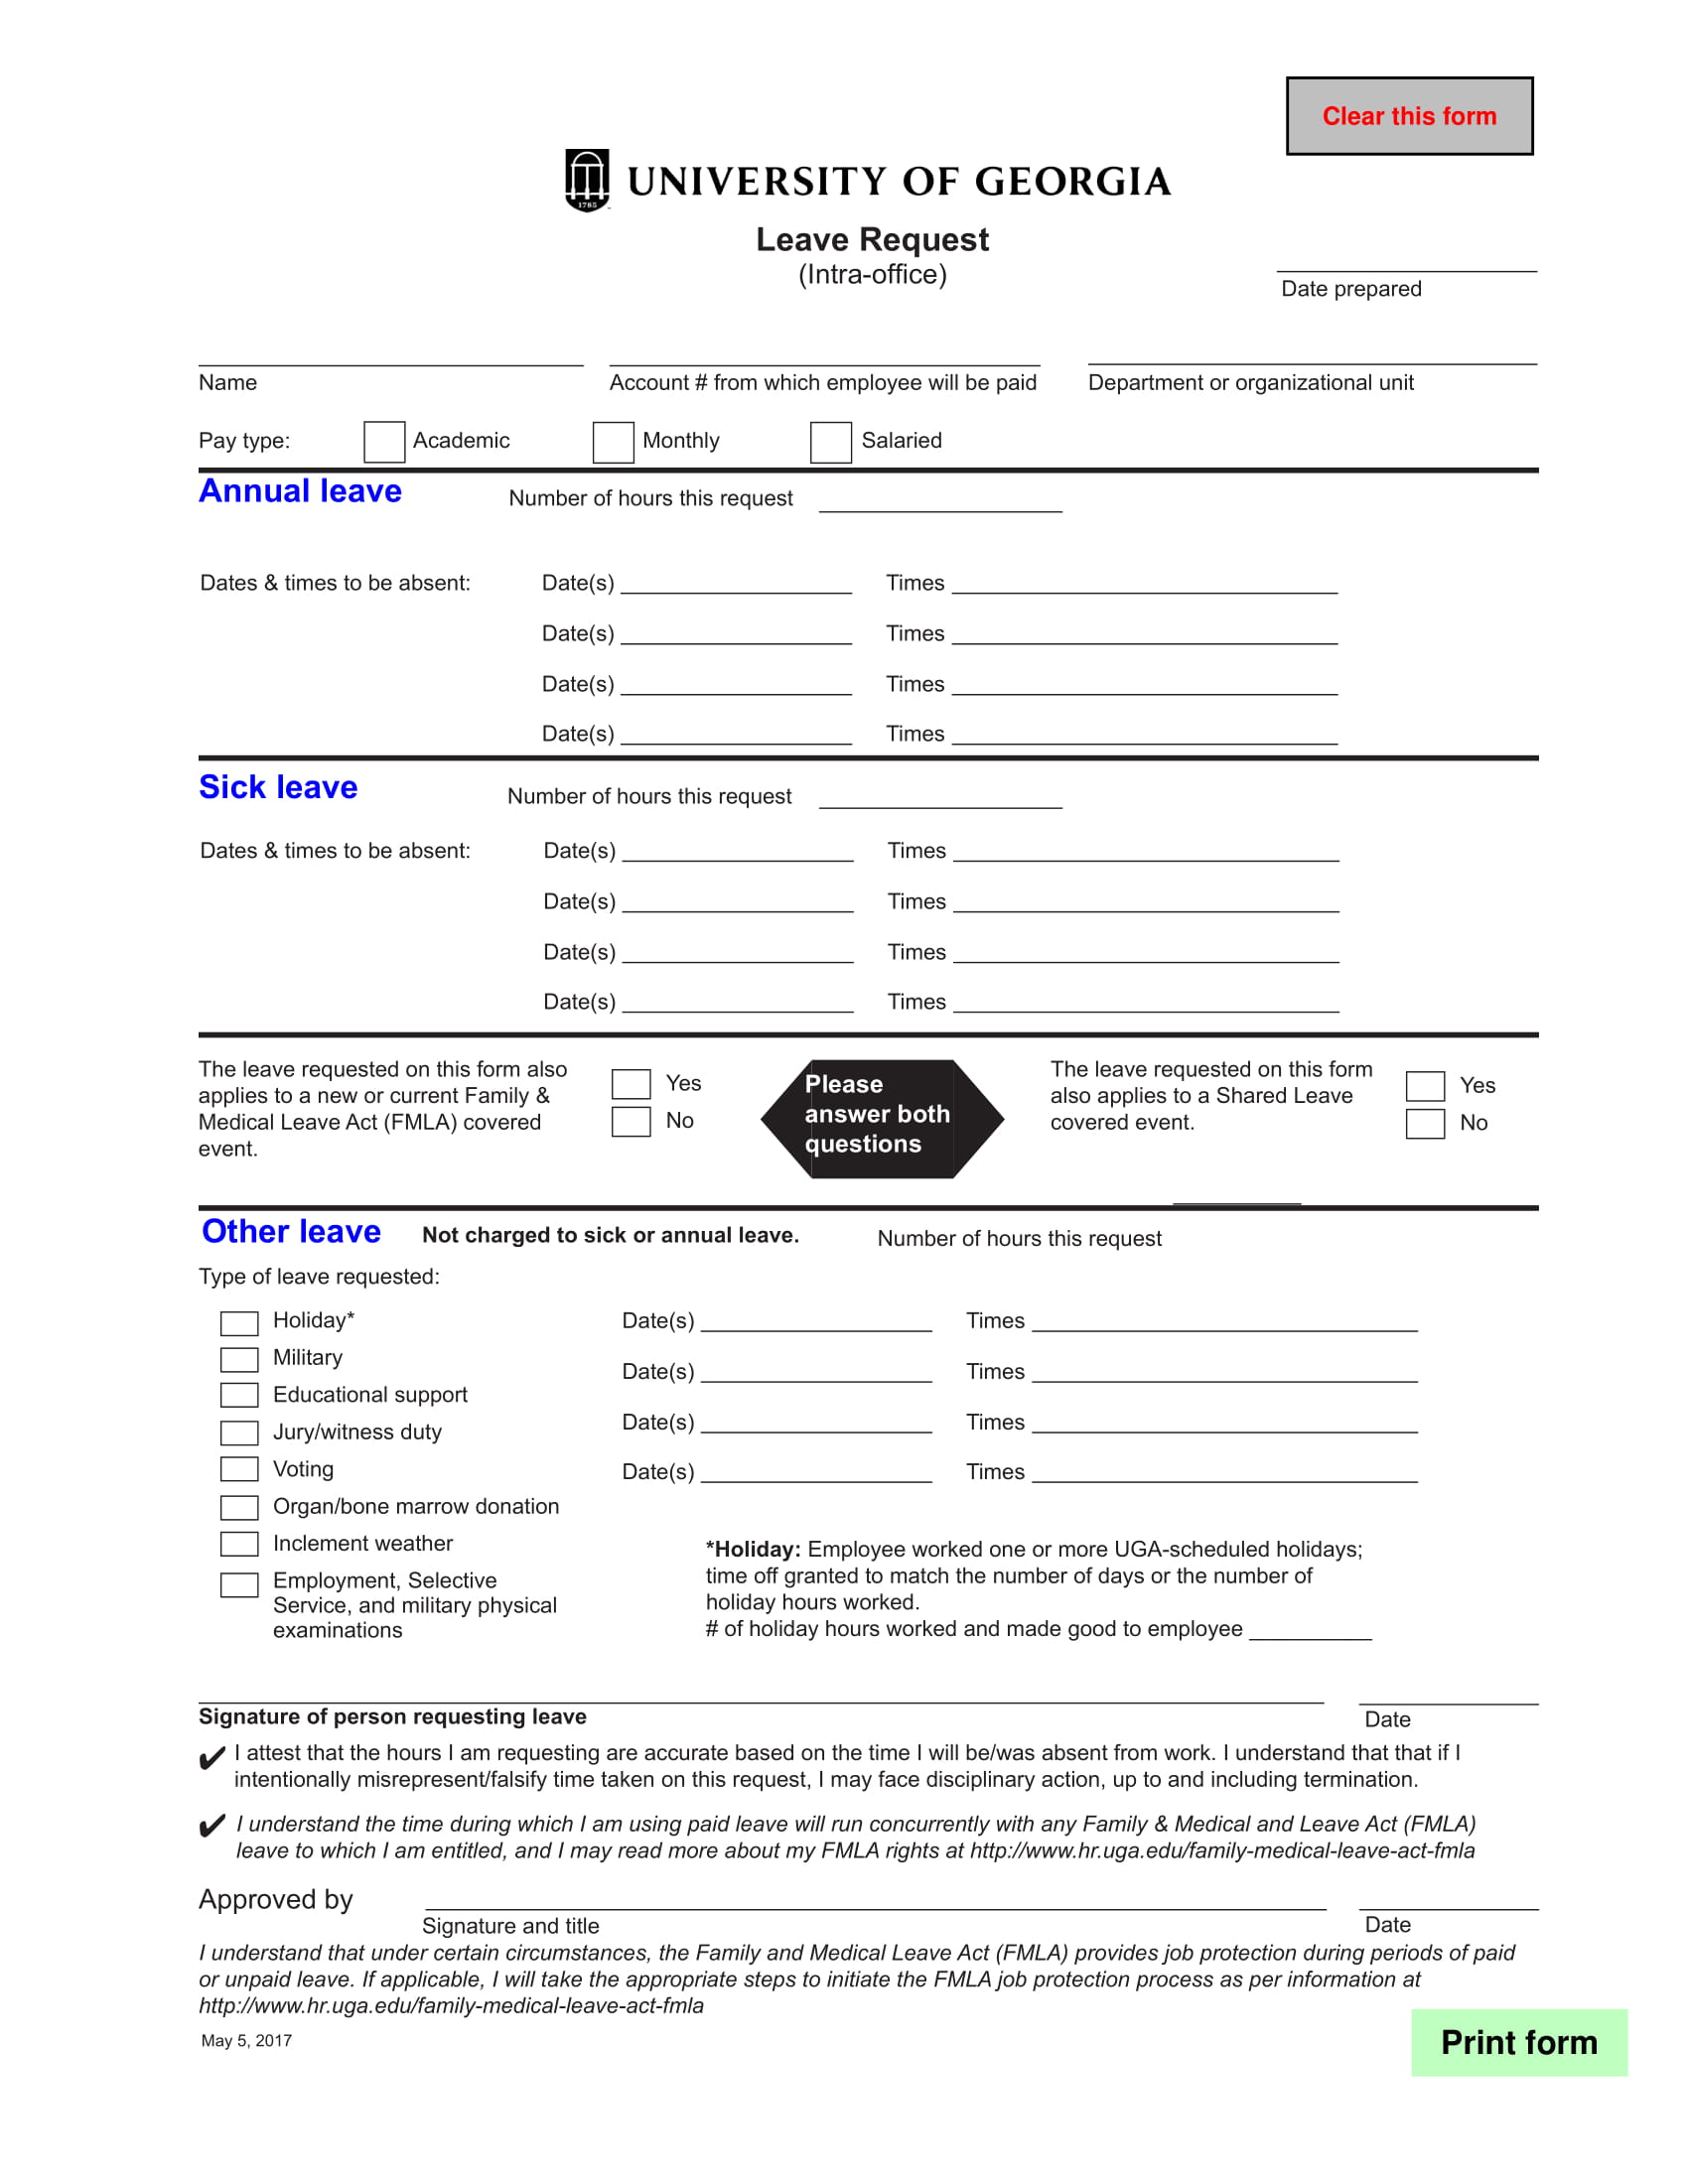 Leave Request Form Example